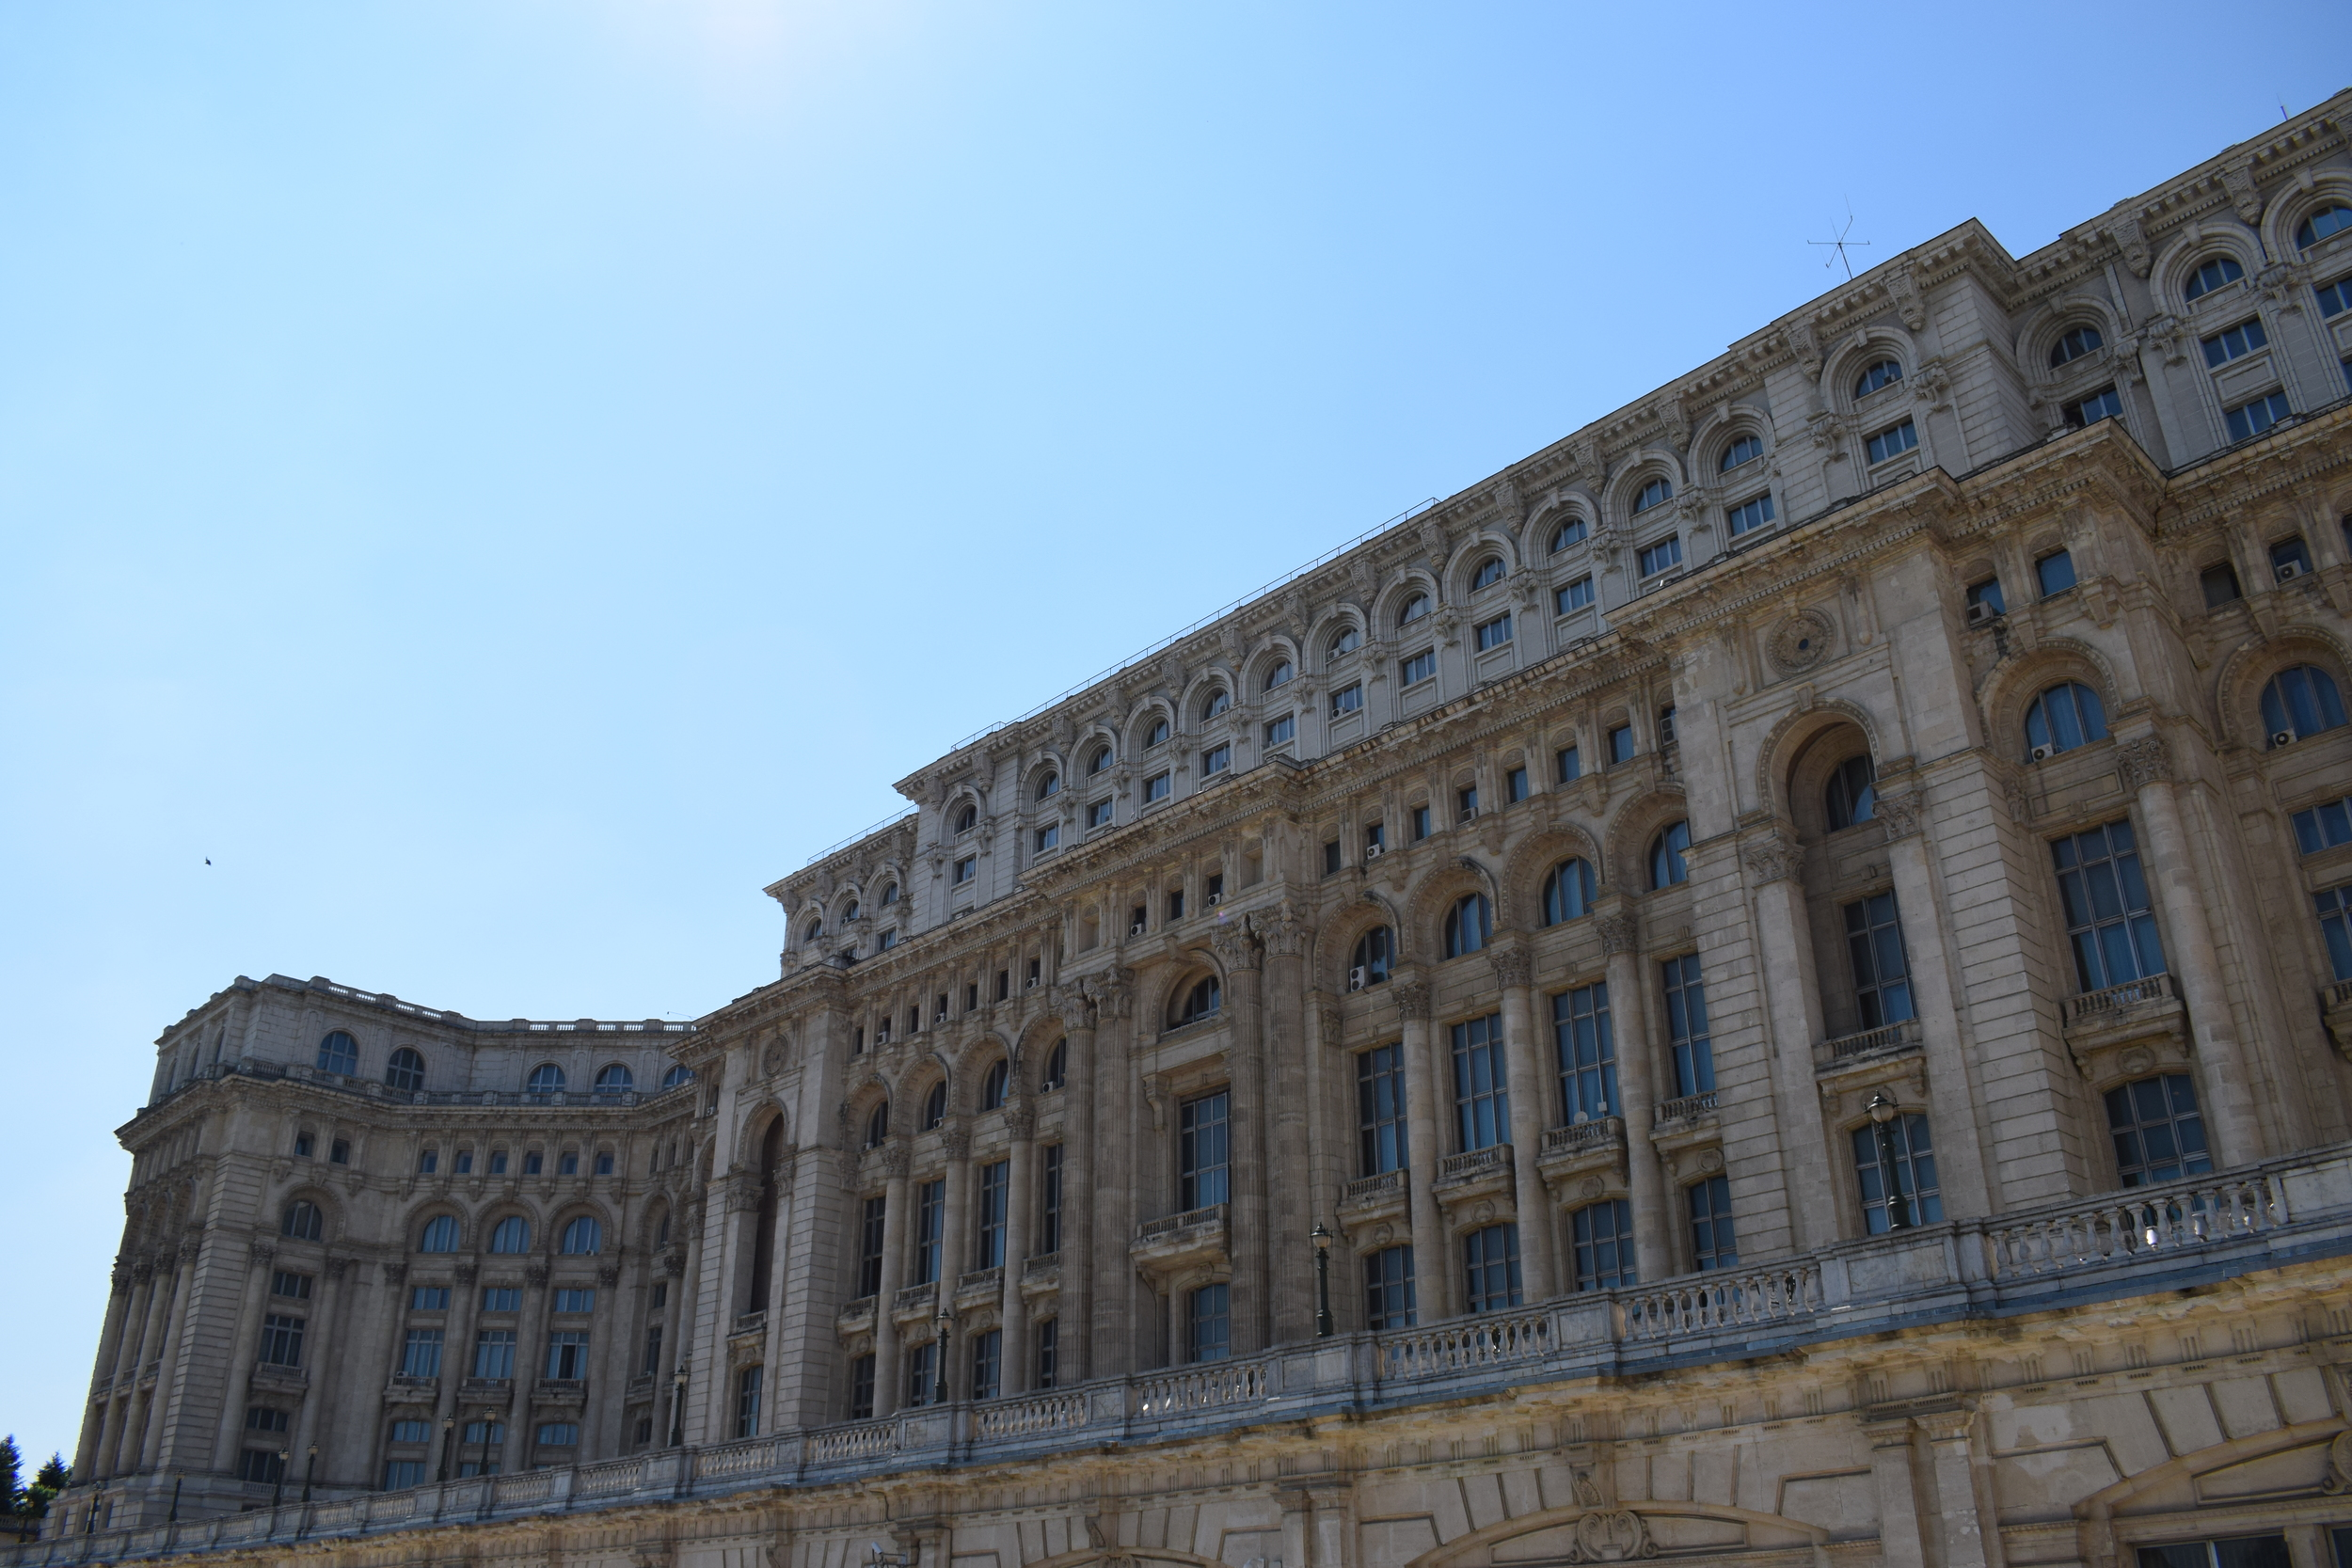 The sheer size of Bucharest's Palace of the Parliament is breathtaking.